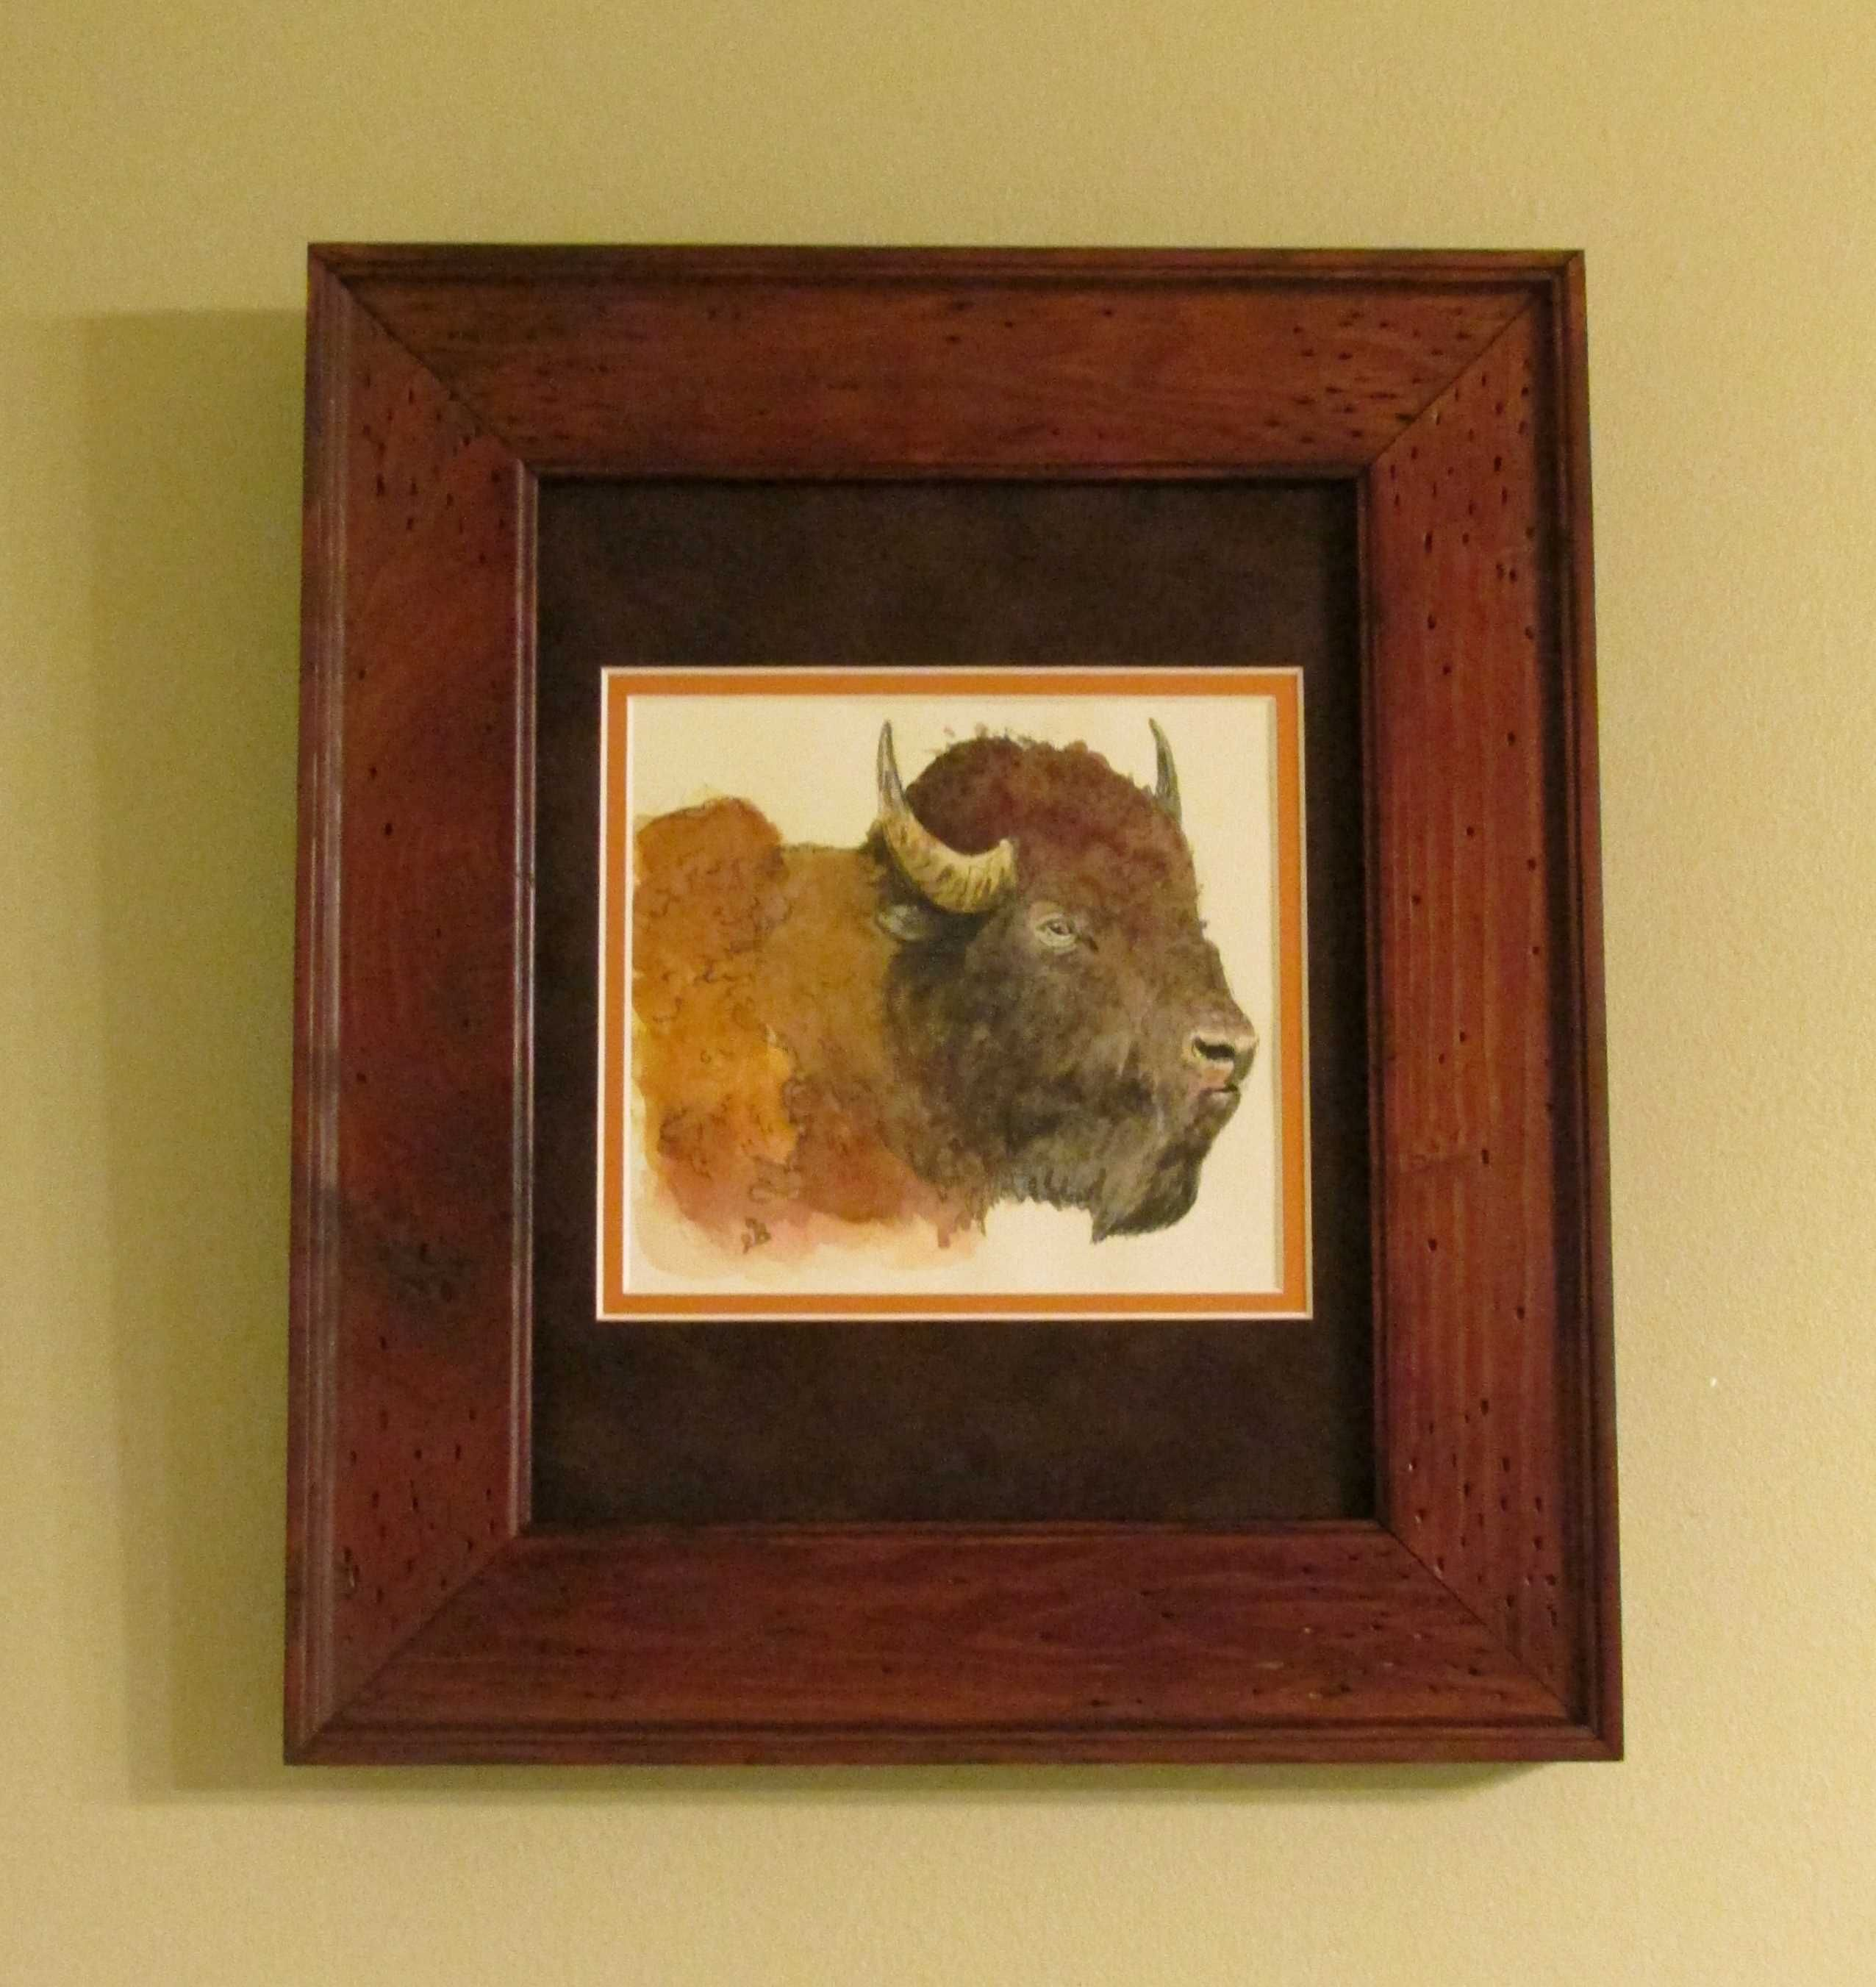 Framed by owner - American Bison Buffalo Original Watercolor Painting by Juan Bosco.  Visit sanmartin-artscrafts.com  to learn more about the artist, view his work and place custom orders.